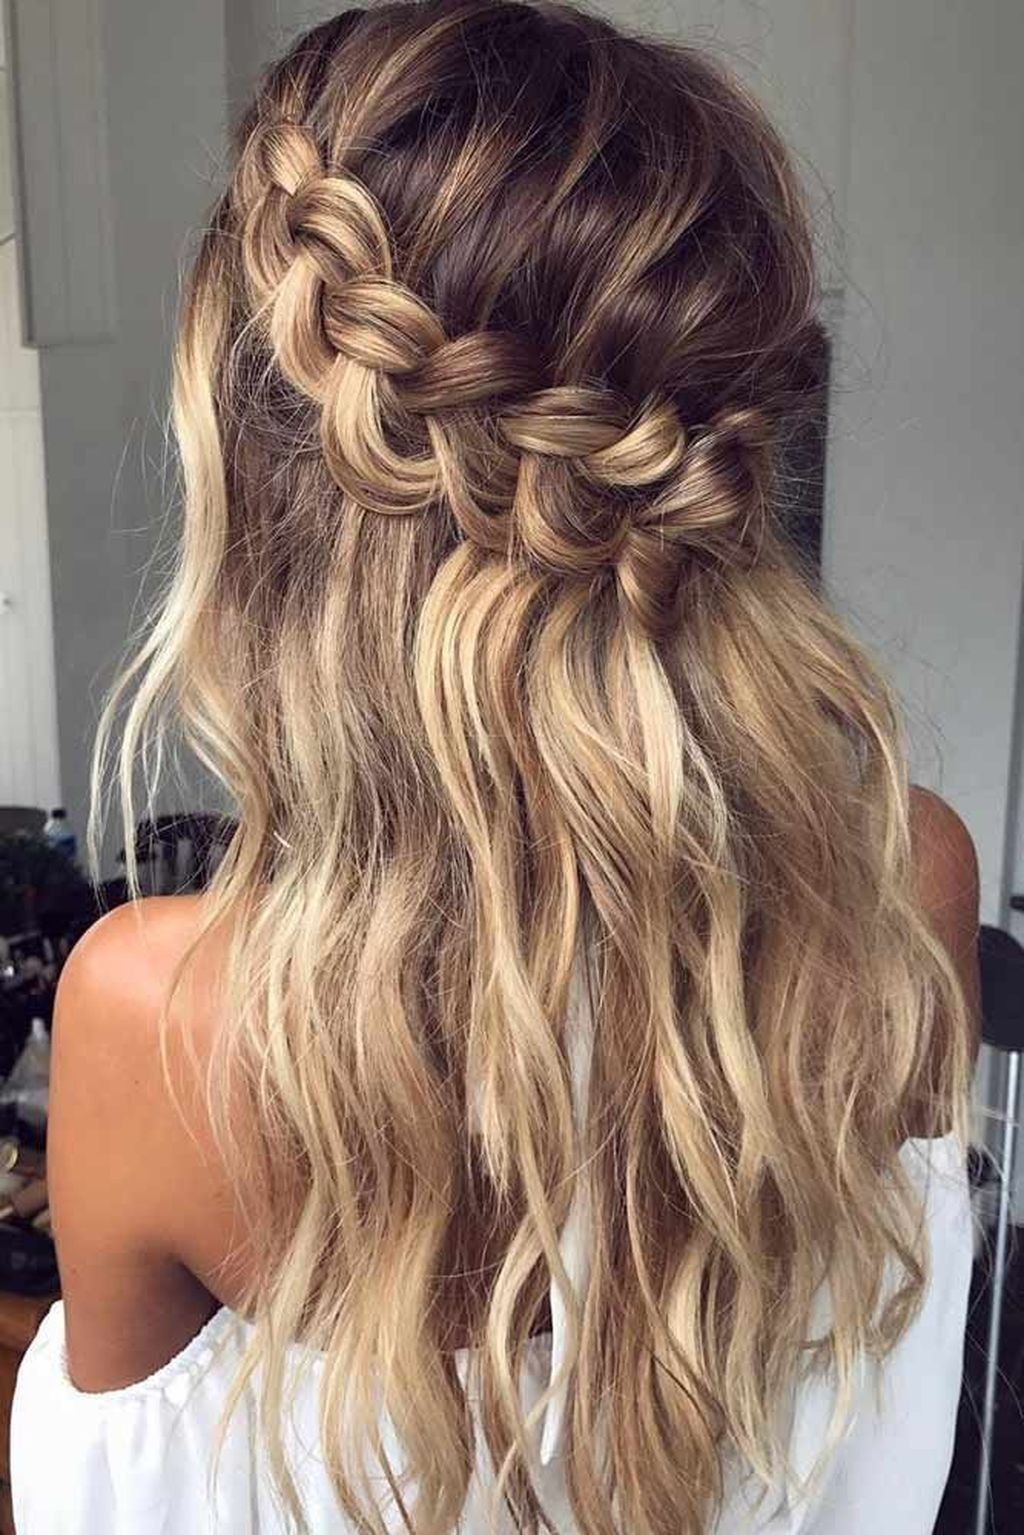 39 Elegant Bridal Hairstyles Ideas For Long Hair - TILEPENDANT